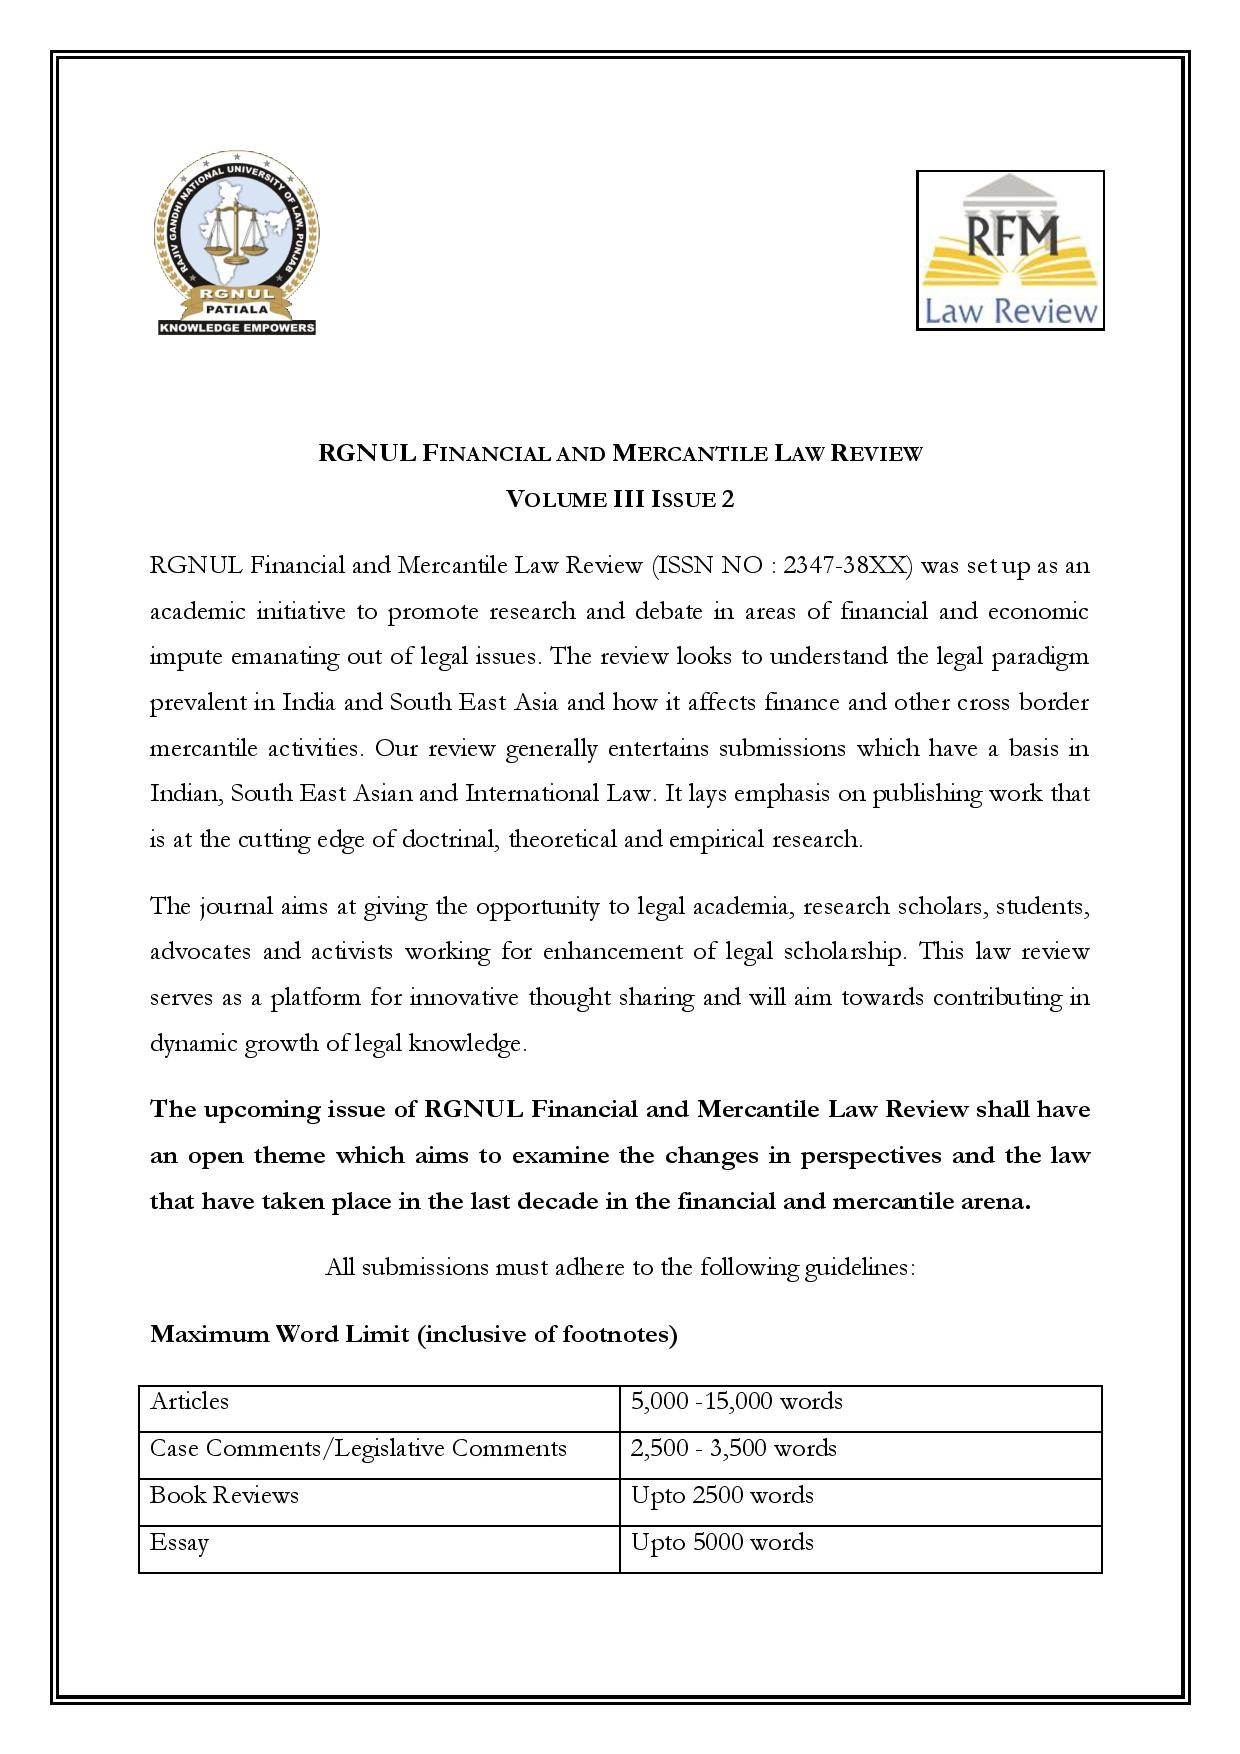 Call for Papers: RGNUL Financial and Mercantile Law Review